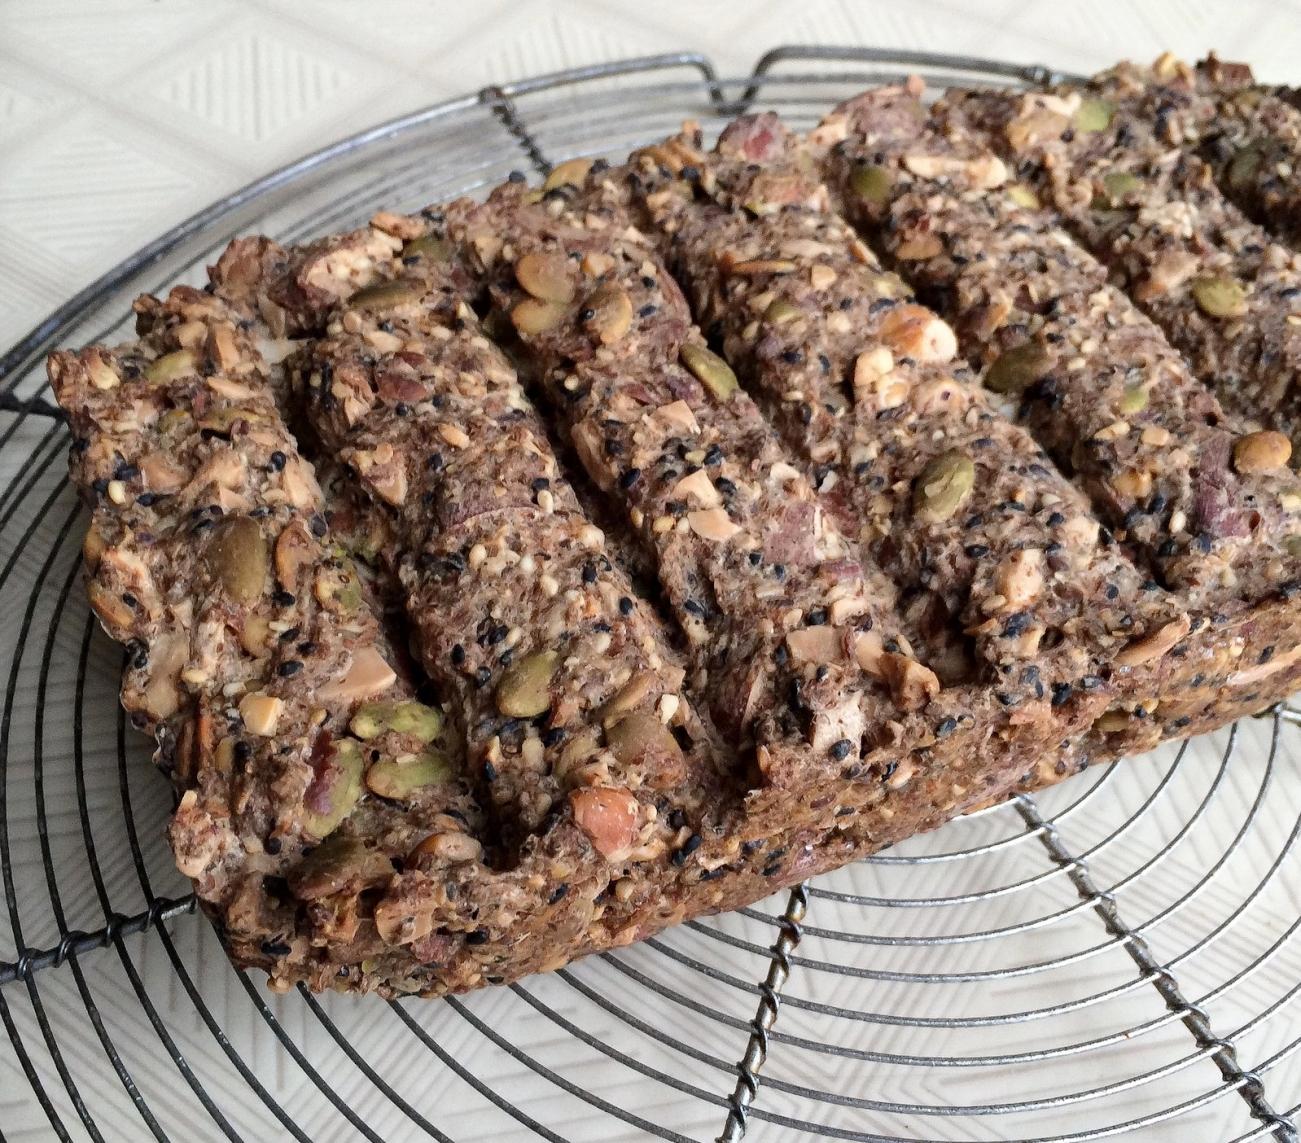 Beautiful seed and nut loaf made by Claudette